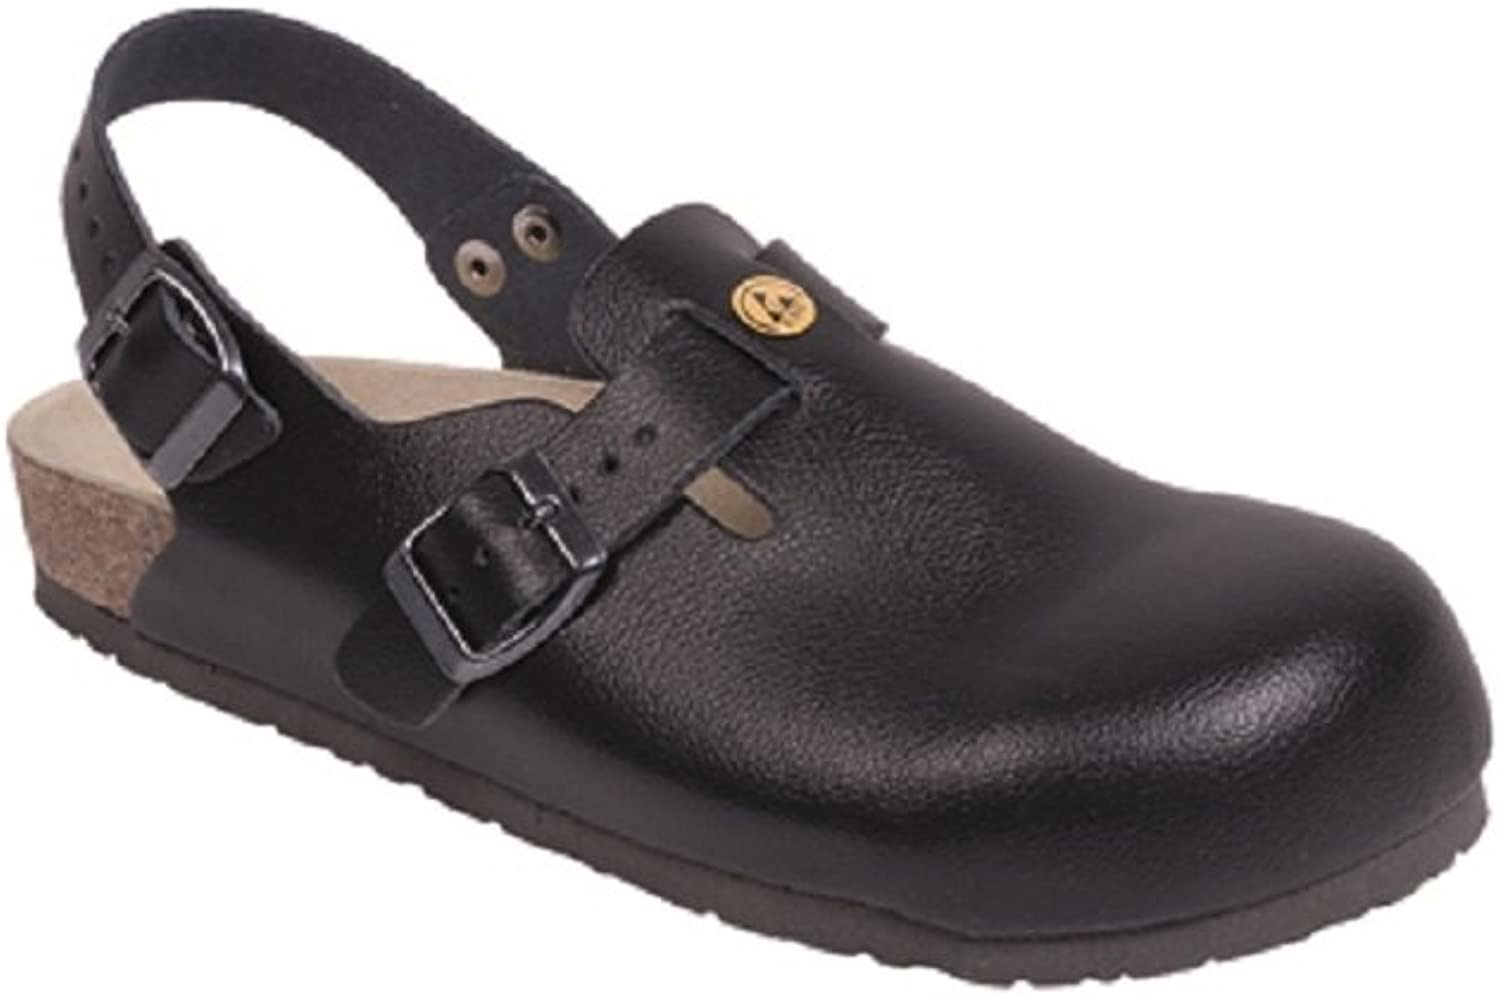 Weeger ESD Clog with Steel Cap